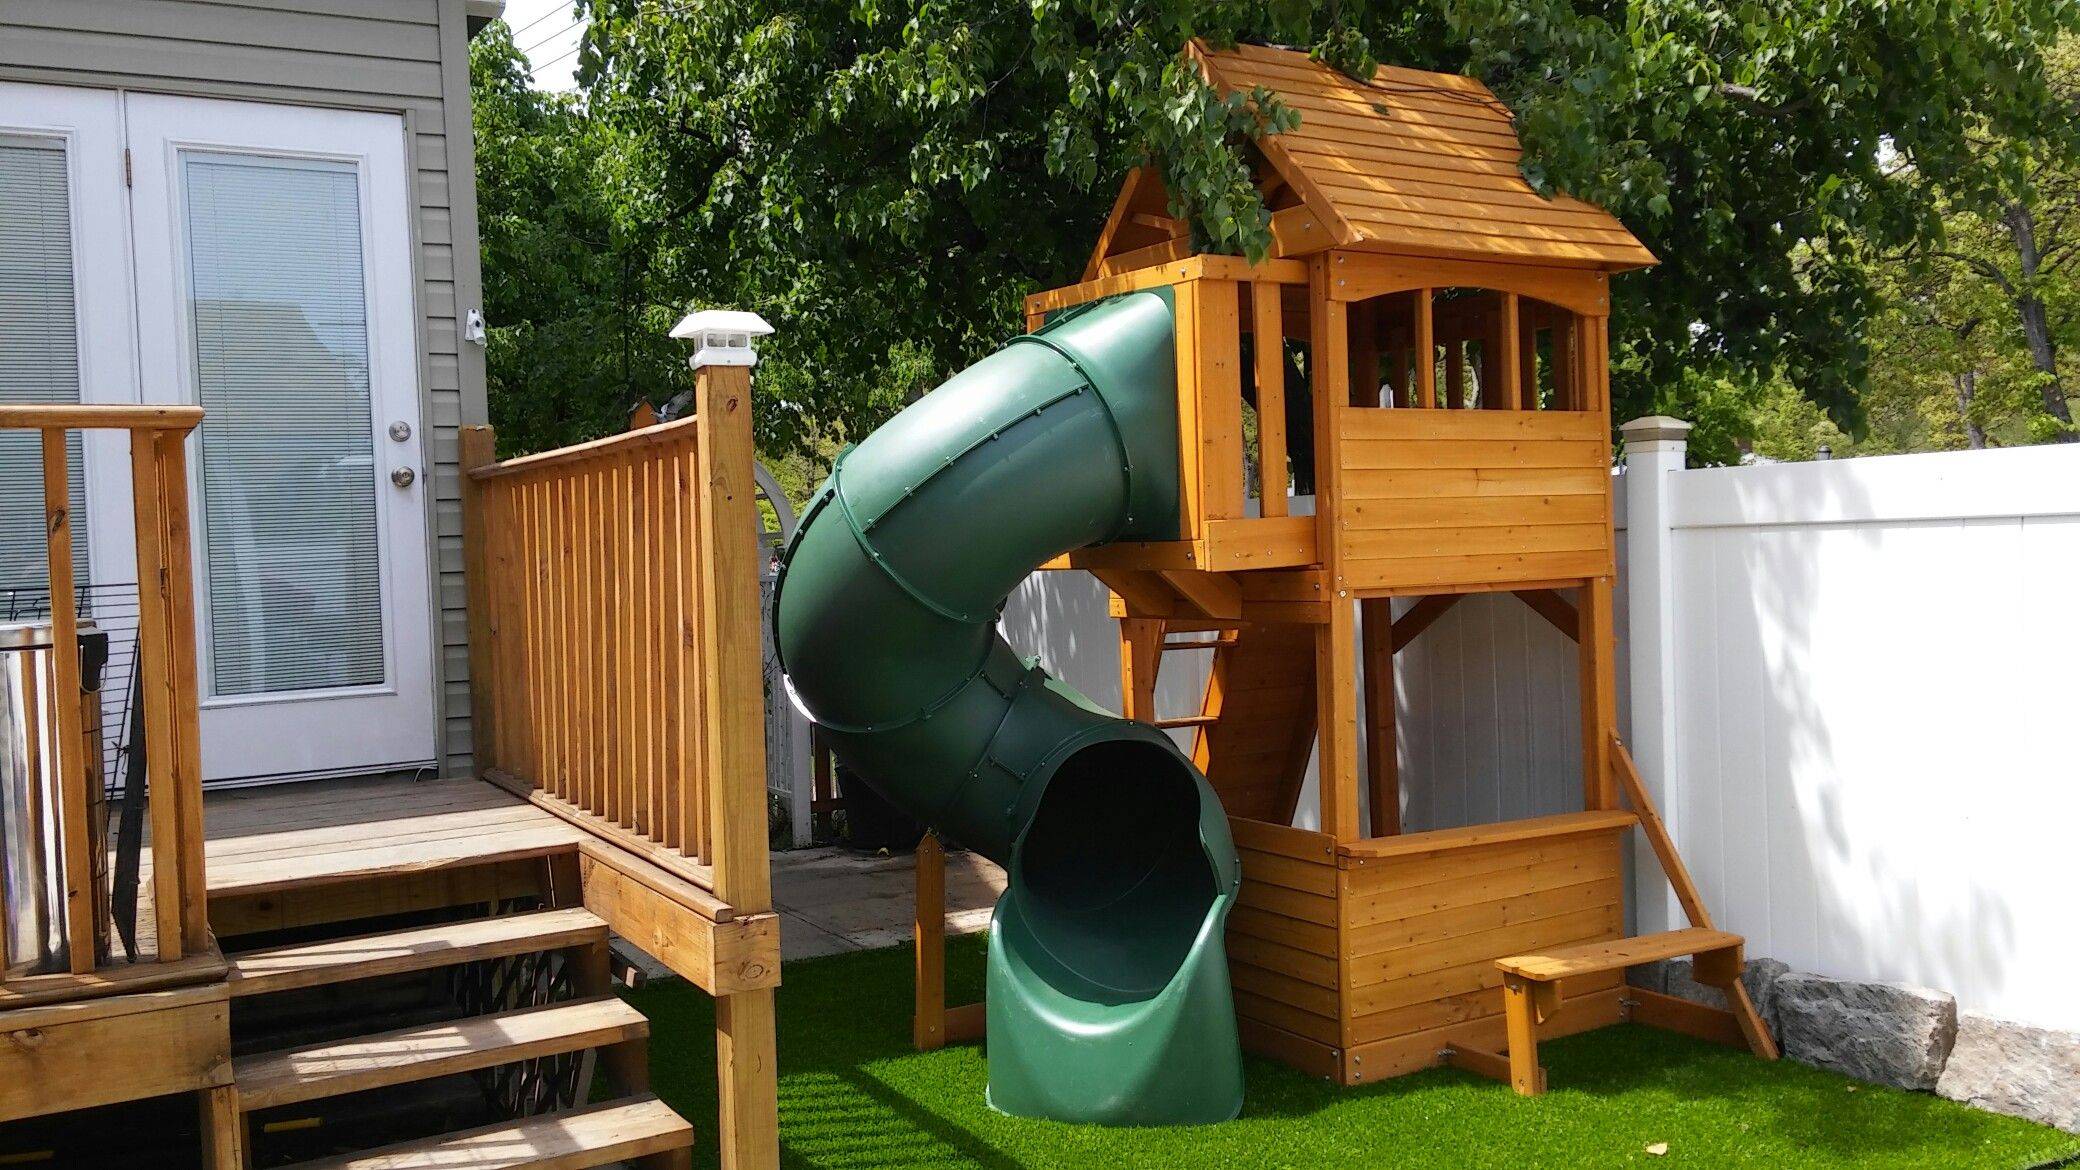 Forest hill retreat swing set cottage look